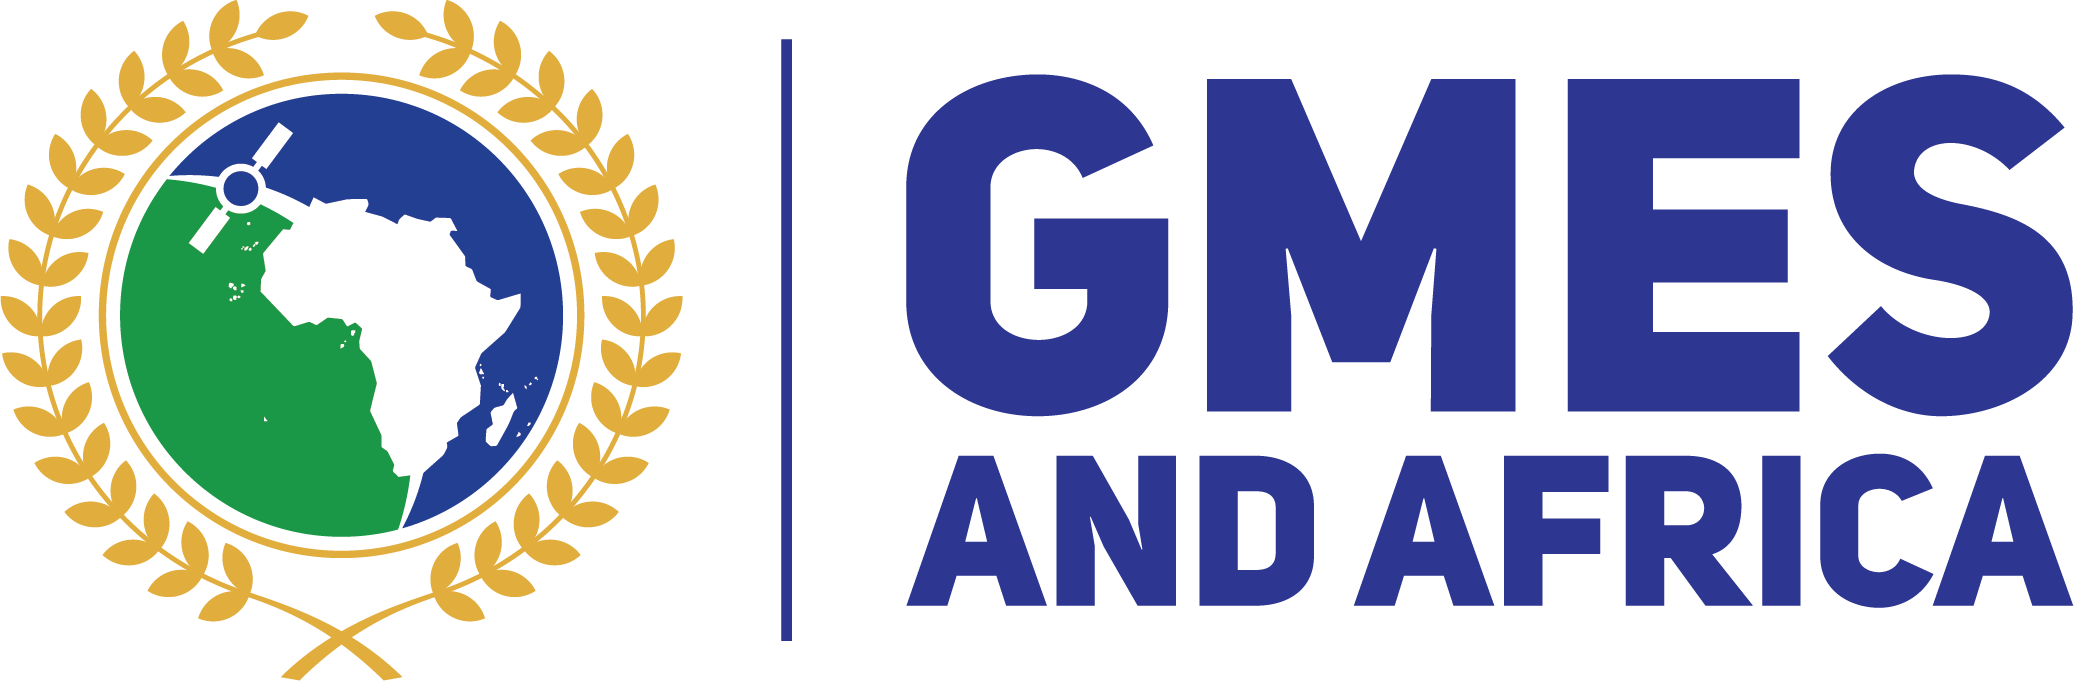 GMES & Africa project is co-funded by European Union and African Union Commission